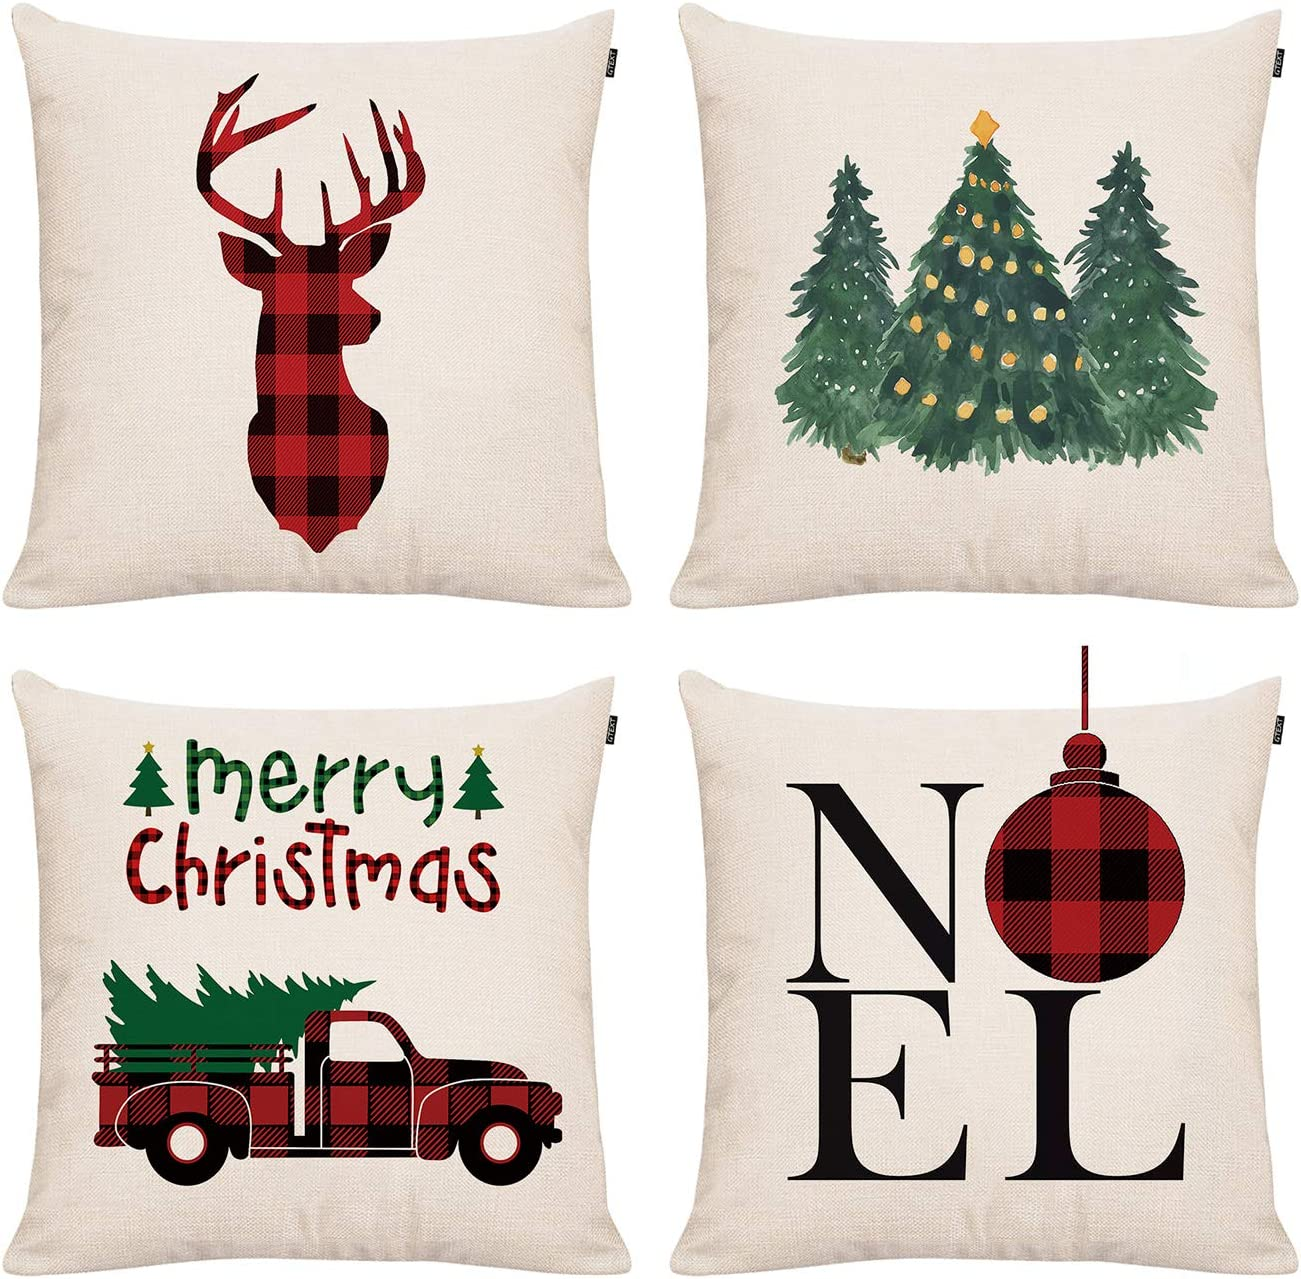 GTEXT Christmas Decor Throw Pillow Cover Holiday Decor Plaids Cuhion Cover  Case for Couch Sofa Home Decoration Fall Pillows Linen 18 X 18 Inches